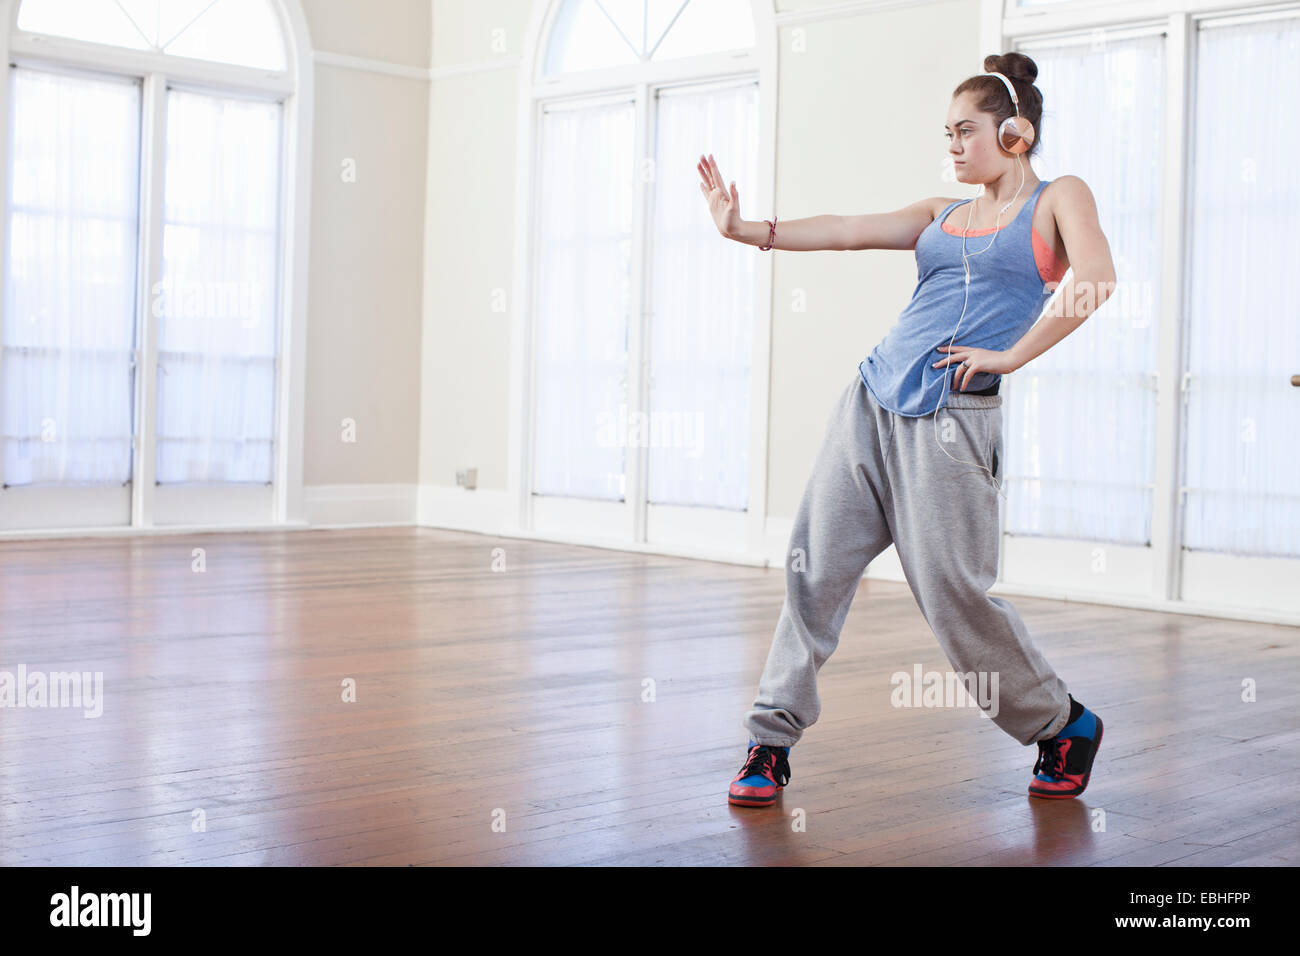 Teenage girl warming up with alternative dance in ballet school - Stock Image